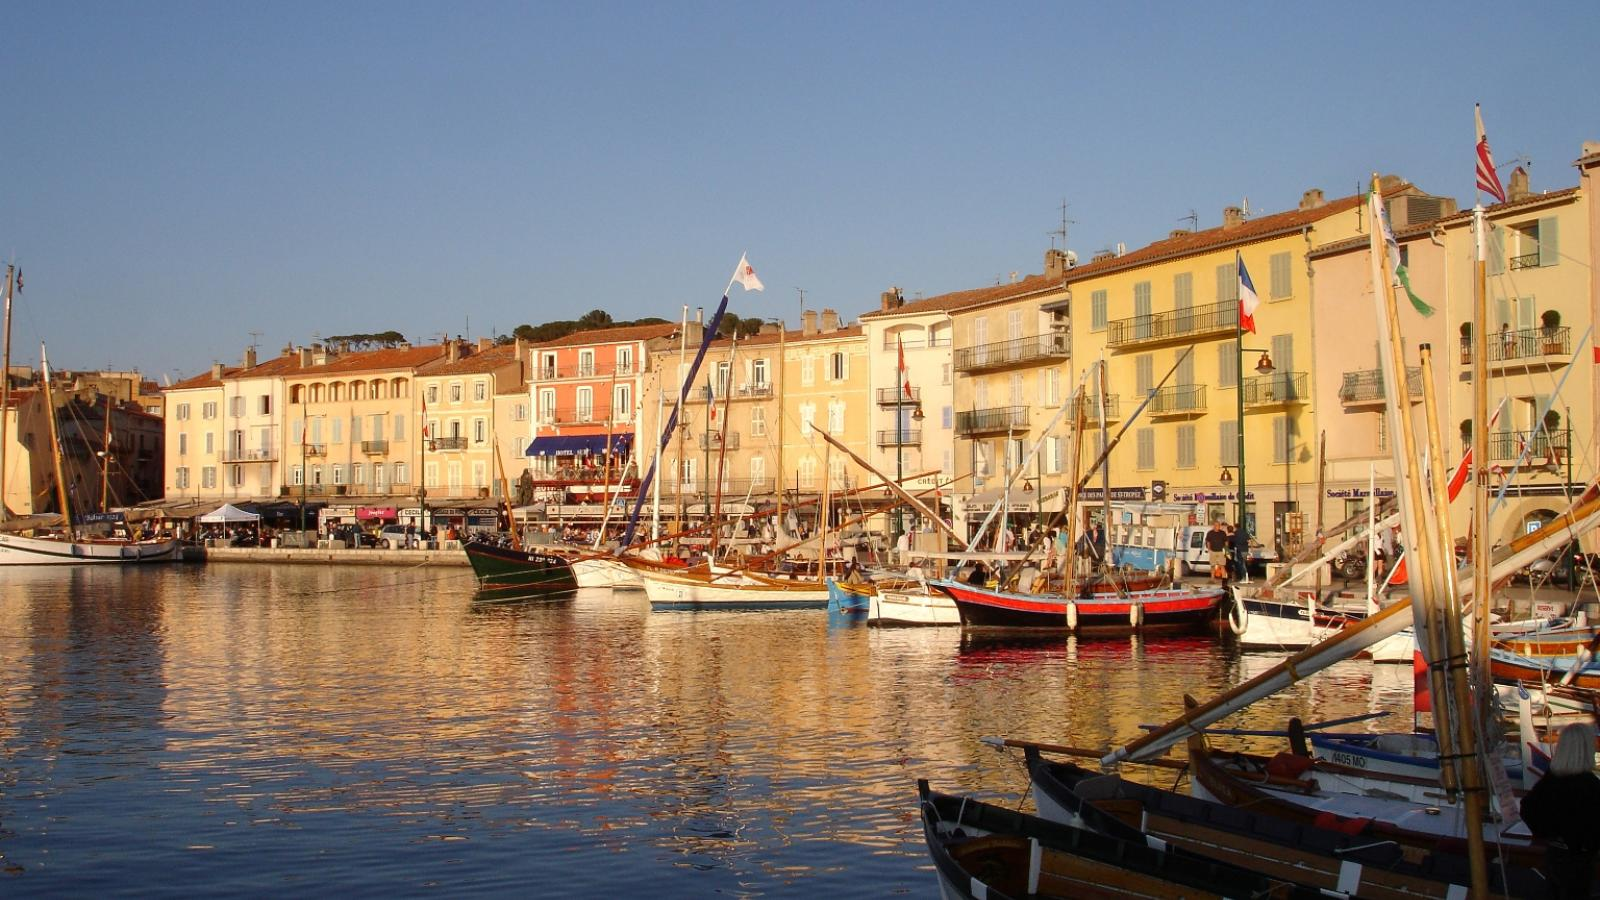 The old port of Saint-Tropez has a story to tell!